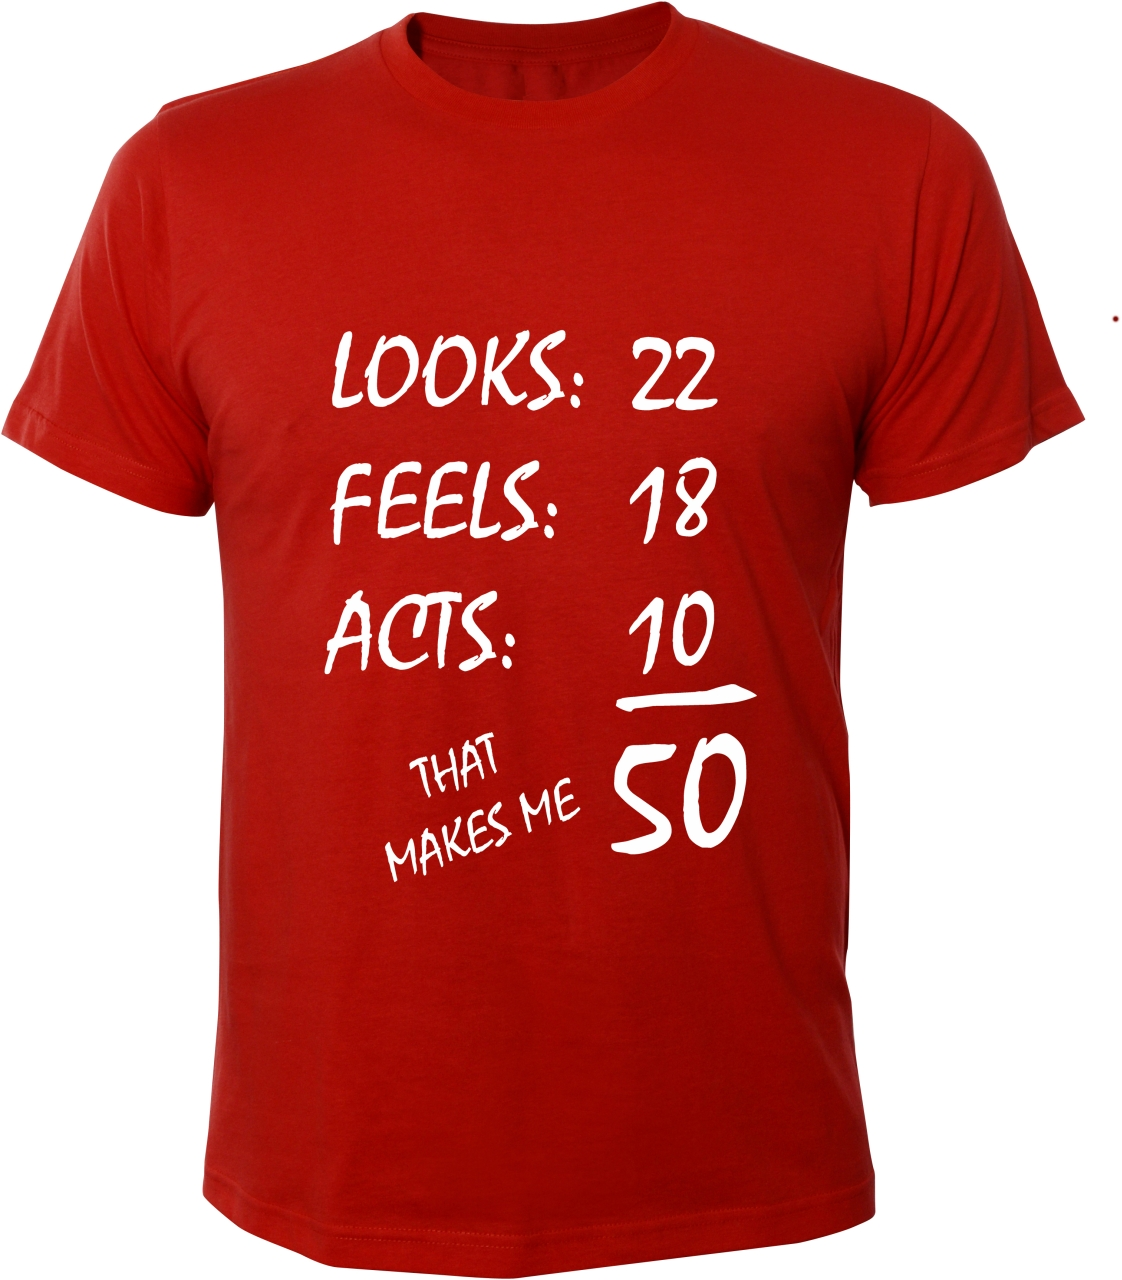 m nner herren t shirt 50 jahre looks feels acts years. Black Bedroom Furniture Sets. Home Design Ideas